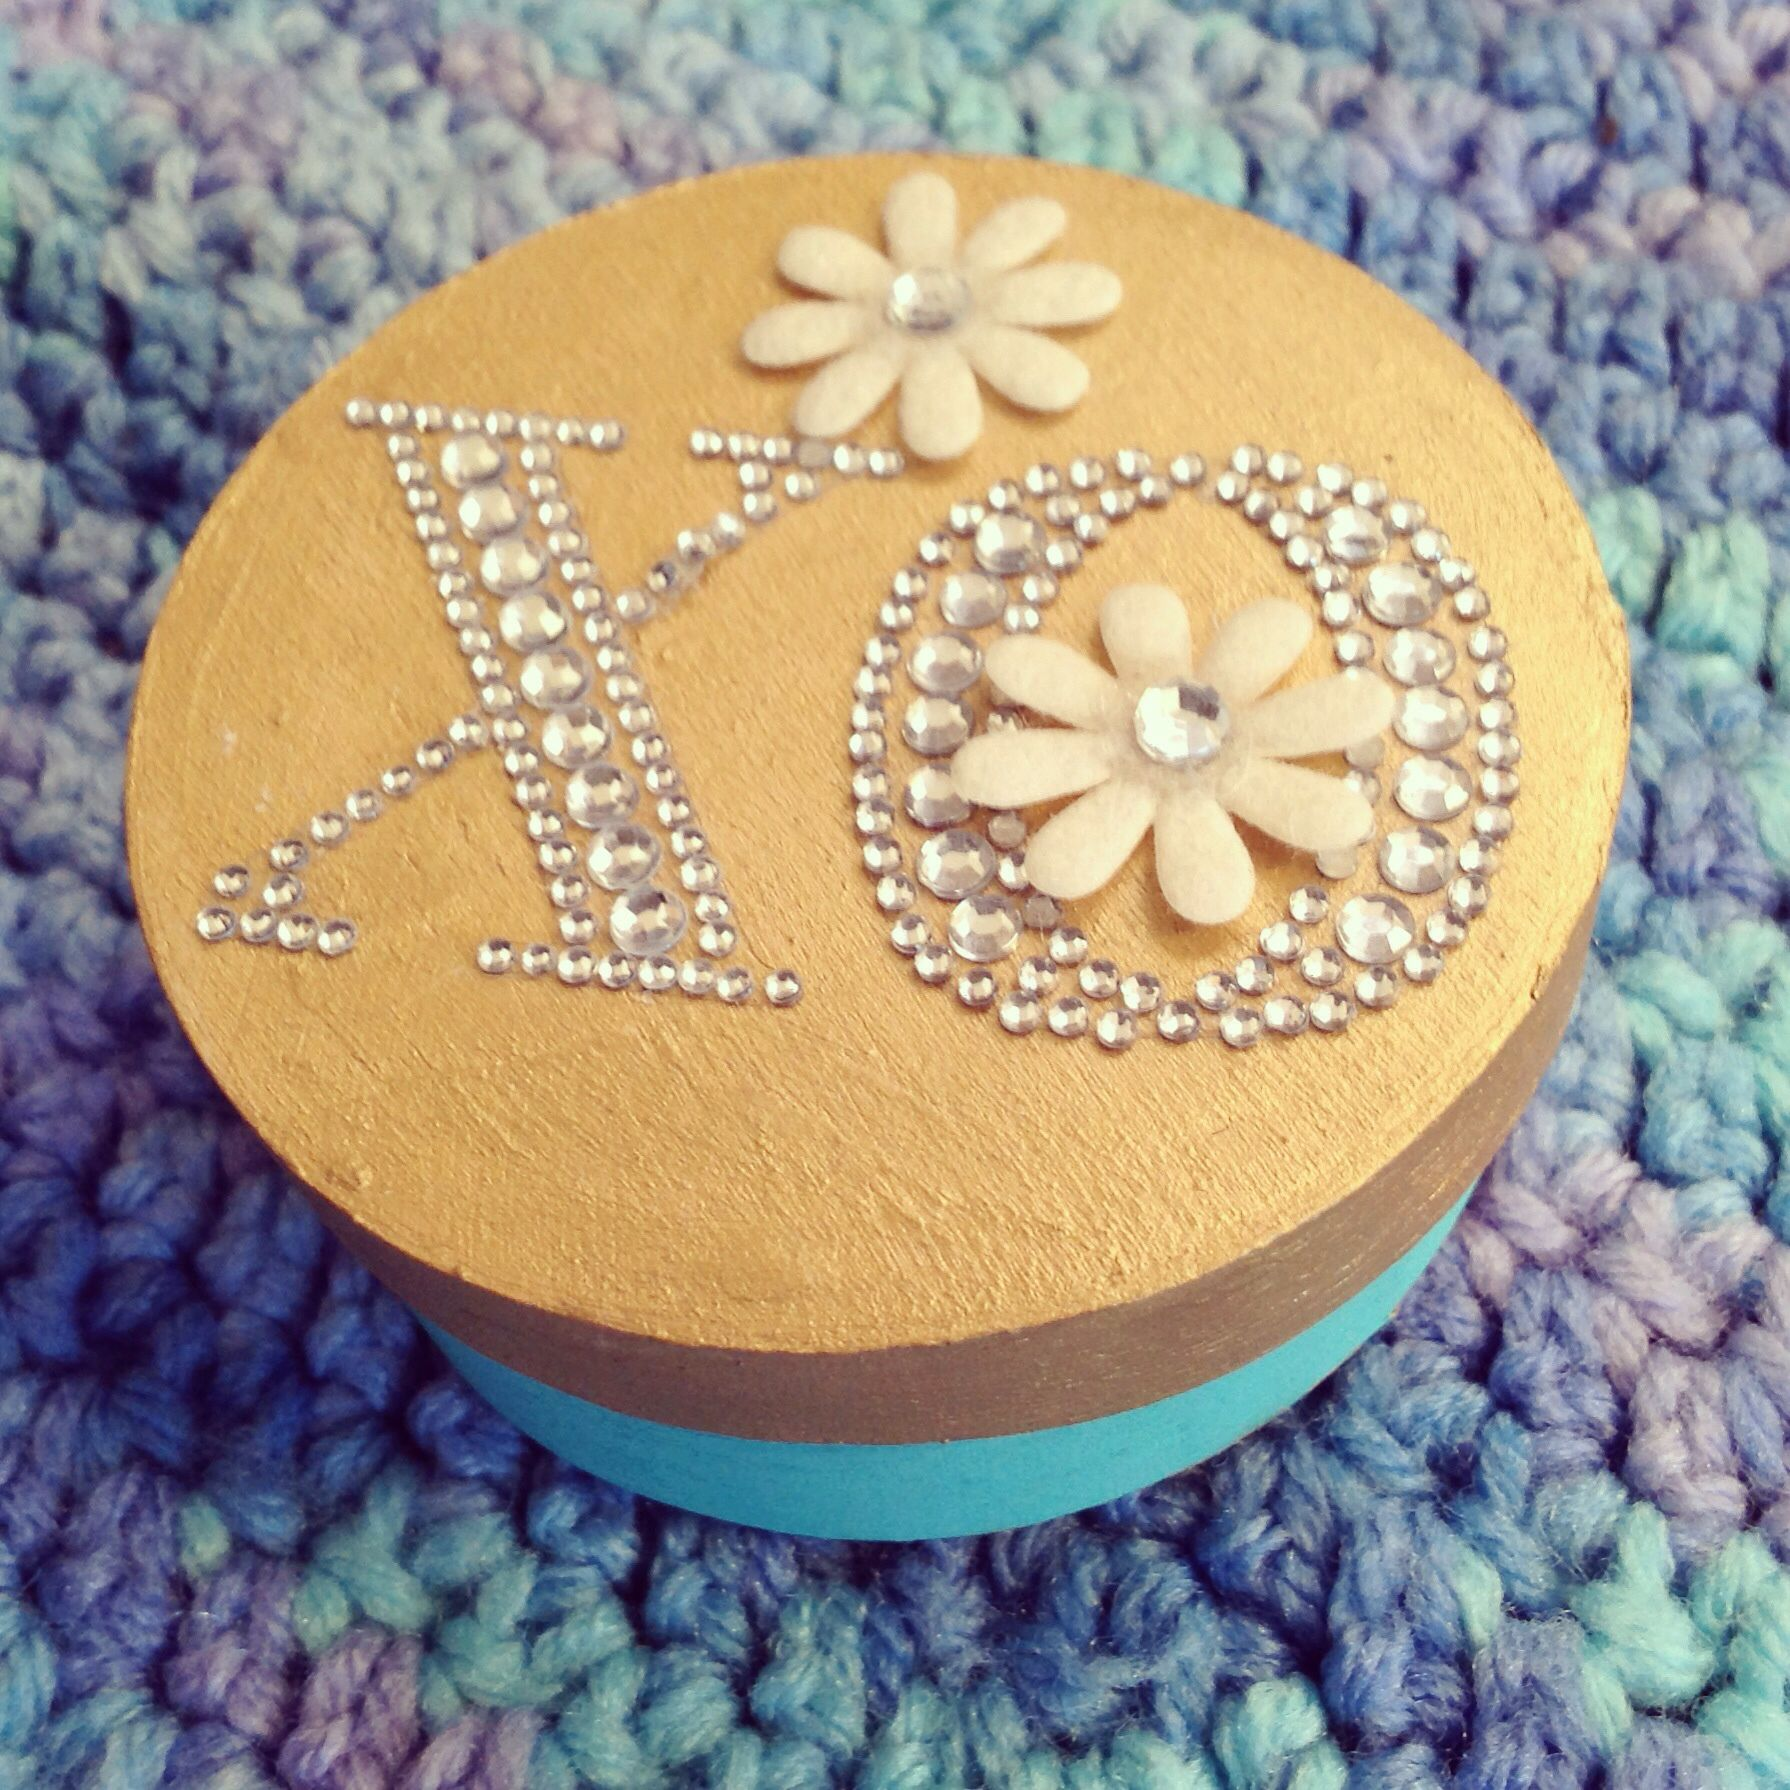 Xo Valentine crafting jewelry boxes